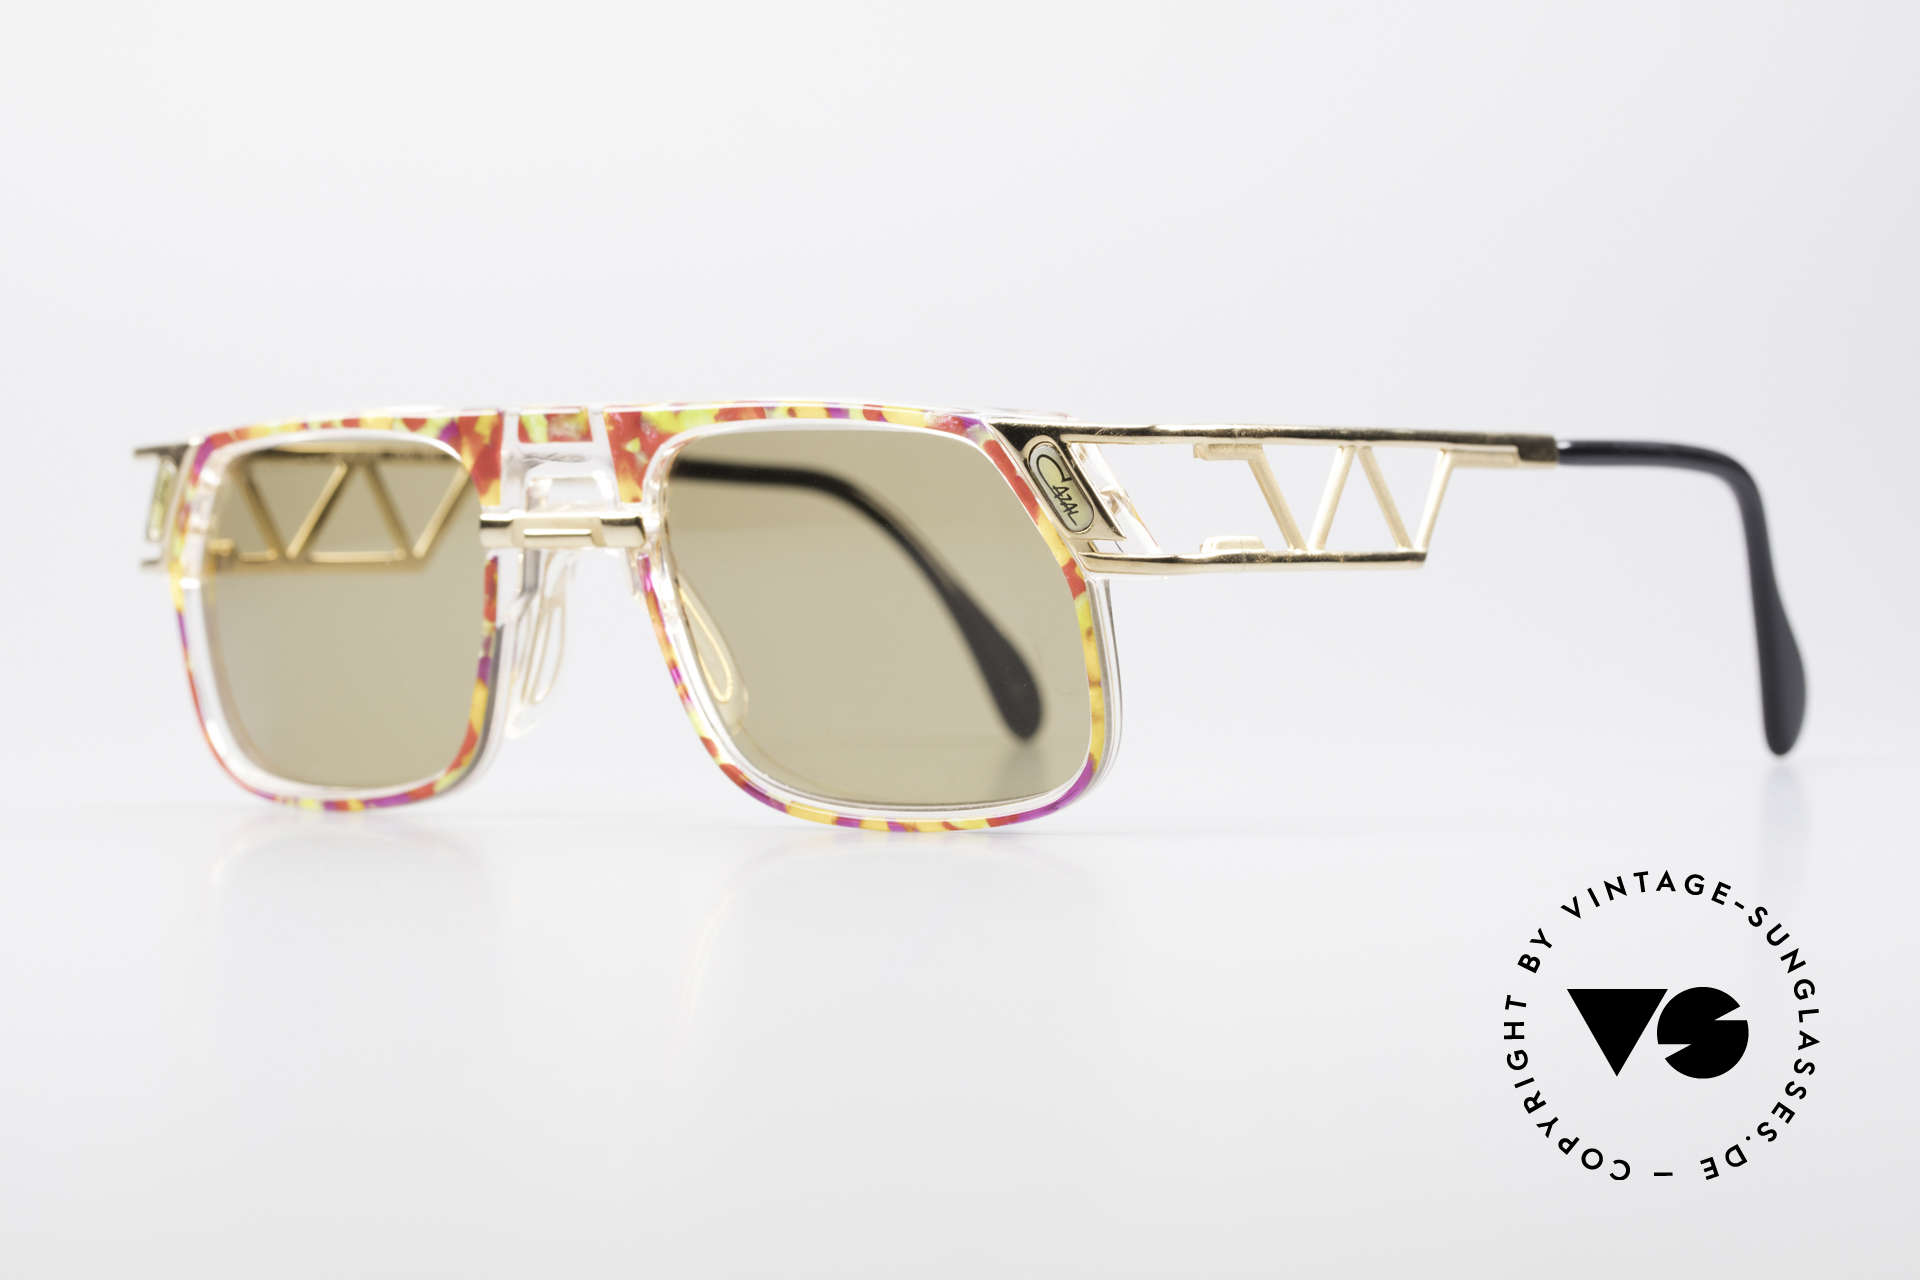 Cazal 876 90's Designer Vintage Frame, unique frame construction & multifaceted frame coloring, Made for Men and Women